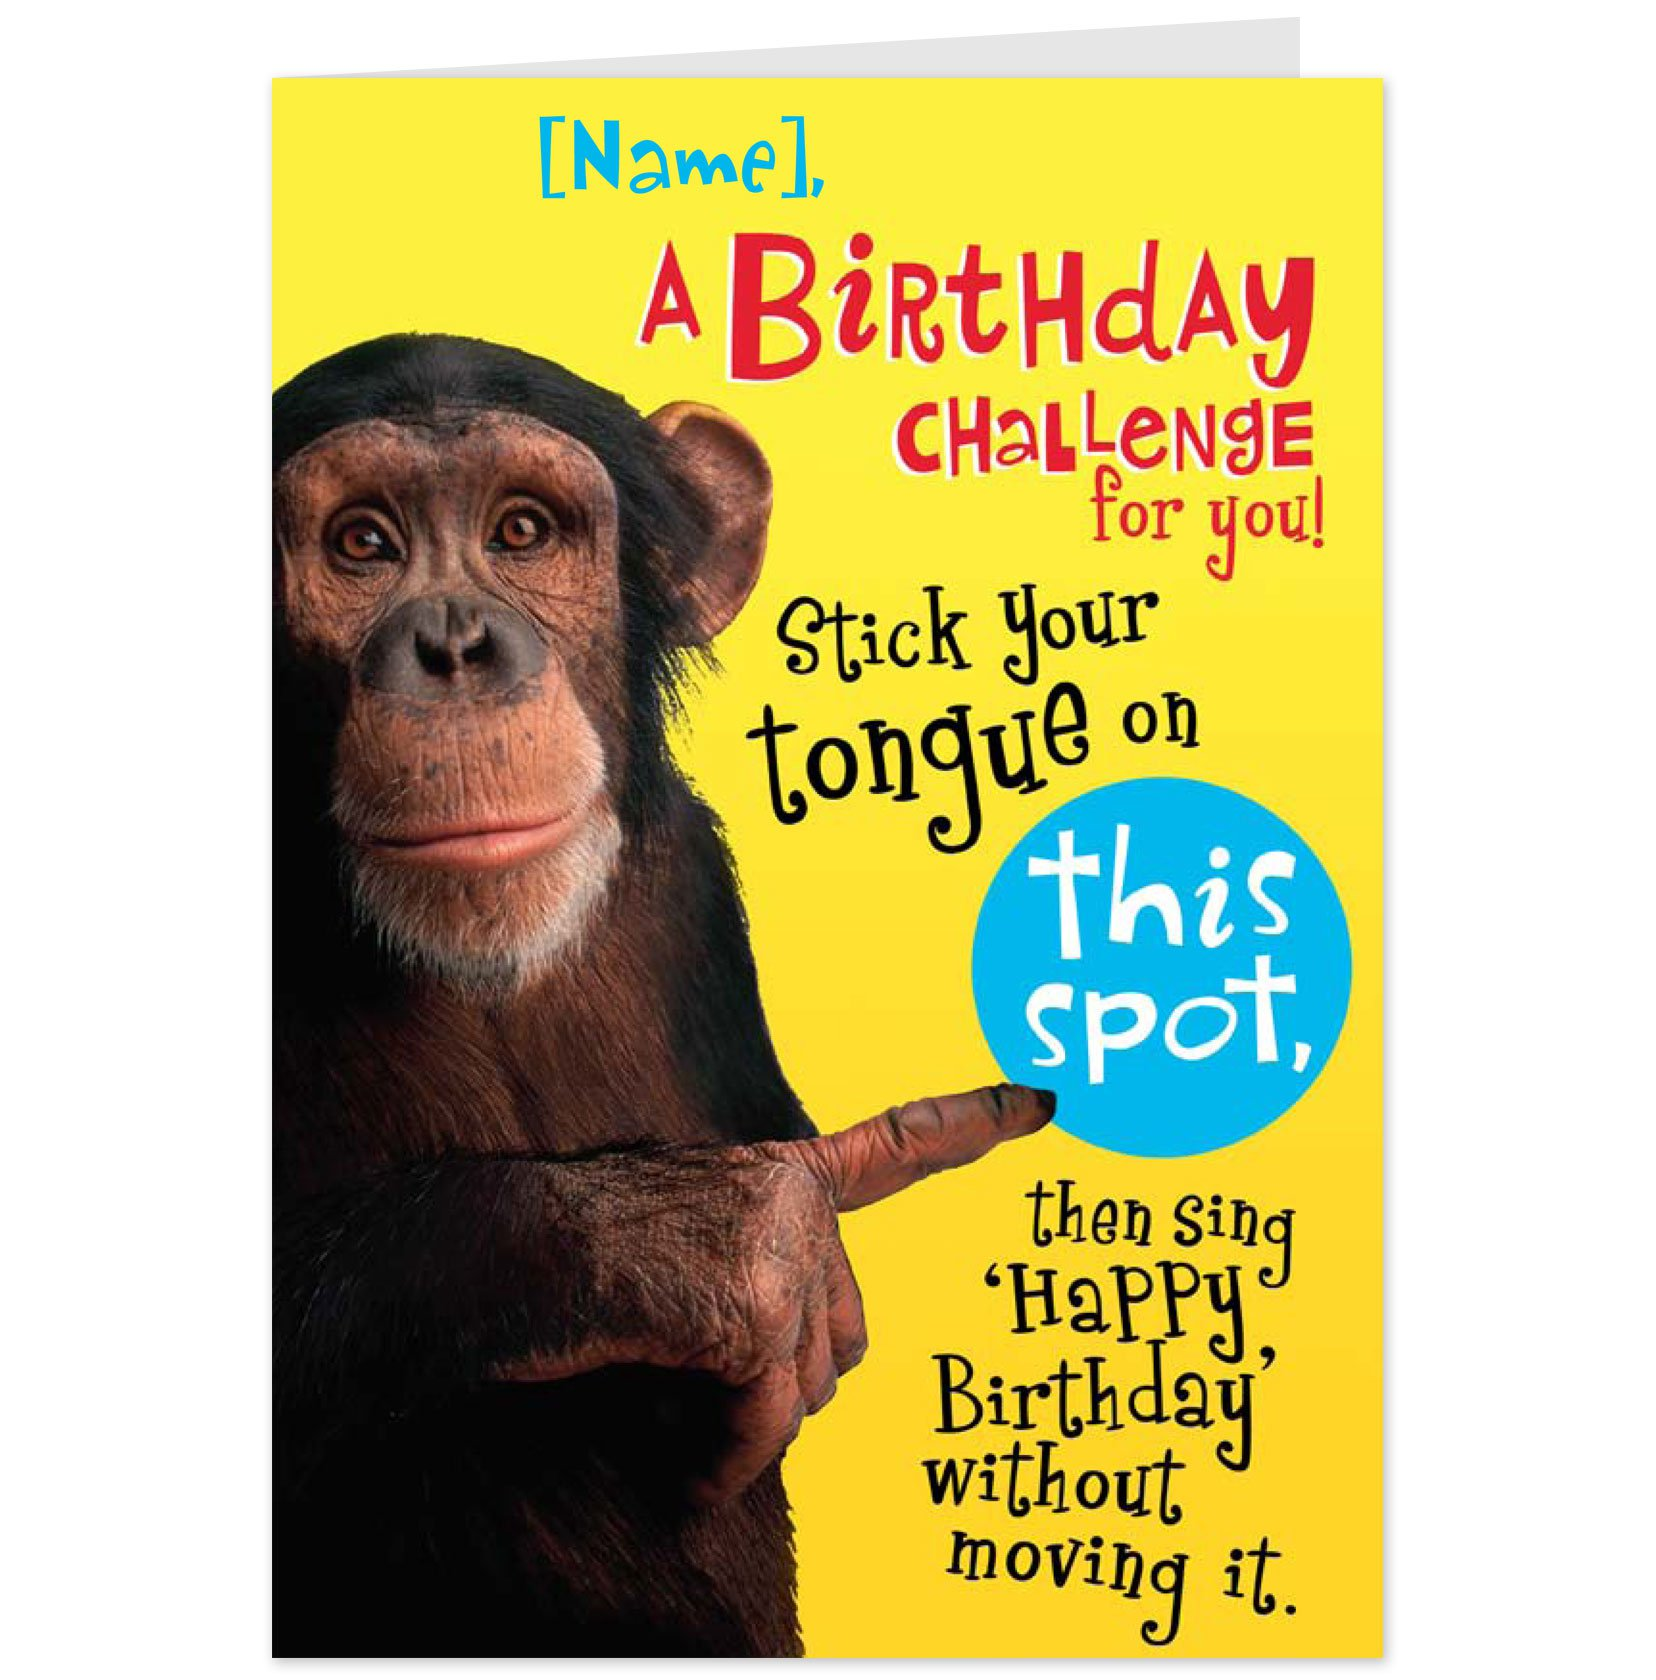 Funny Birthday Wishes Quotes - NiceWishes